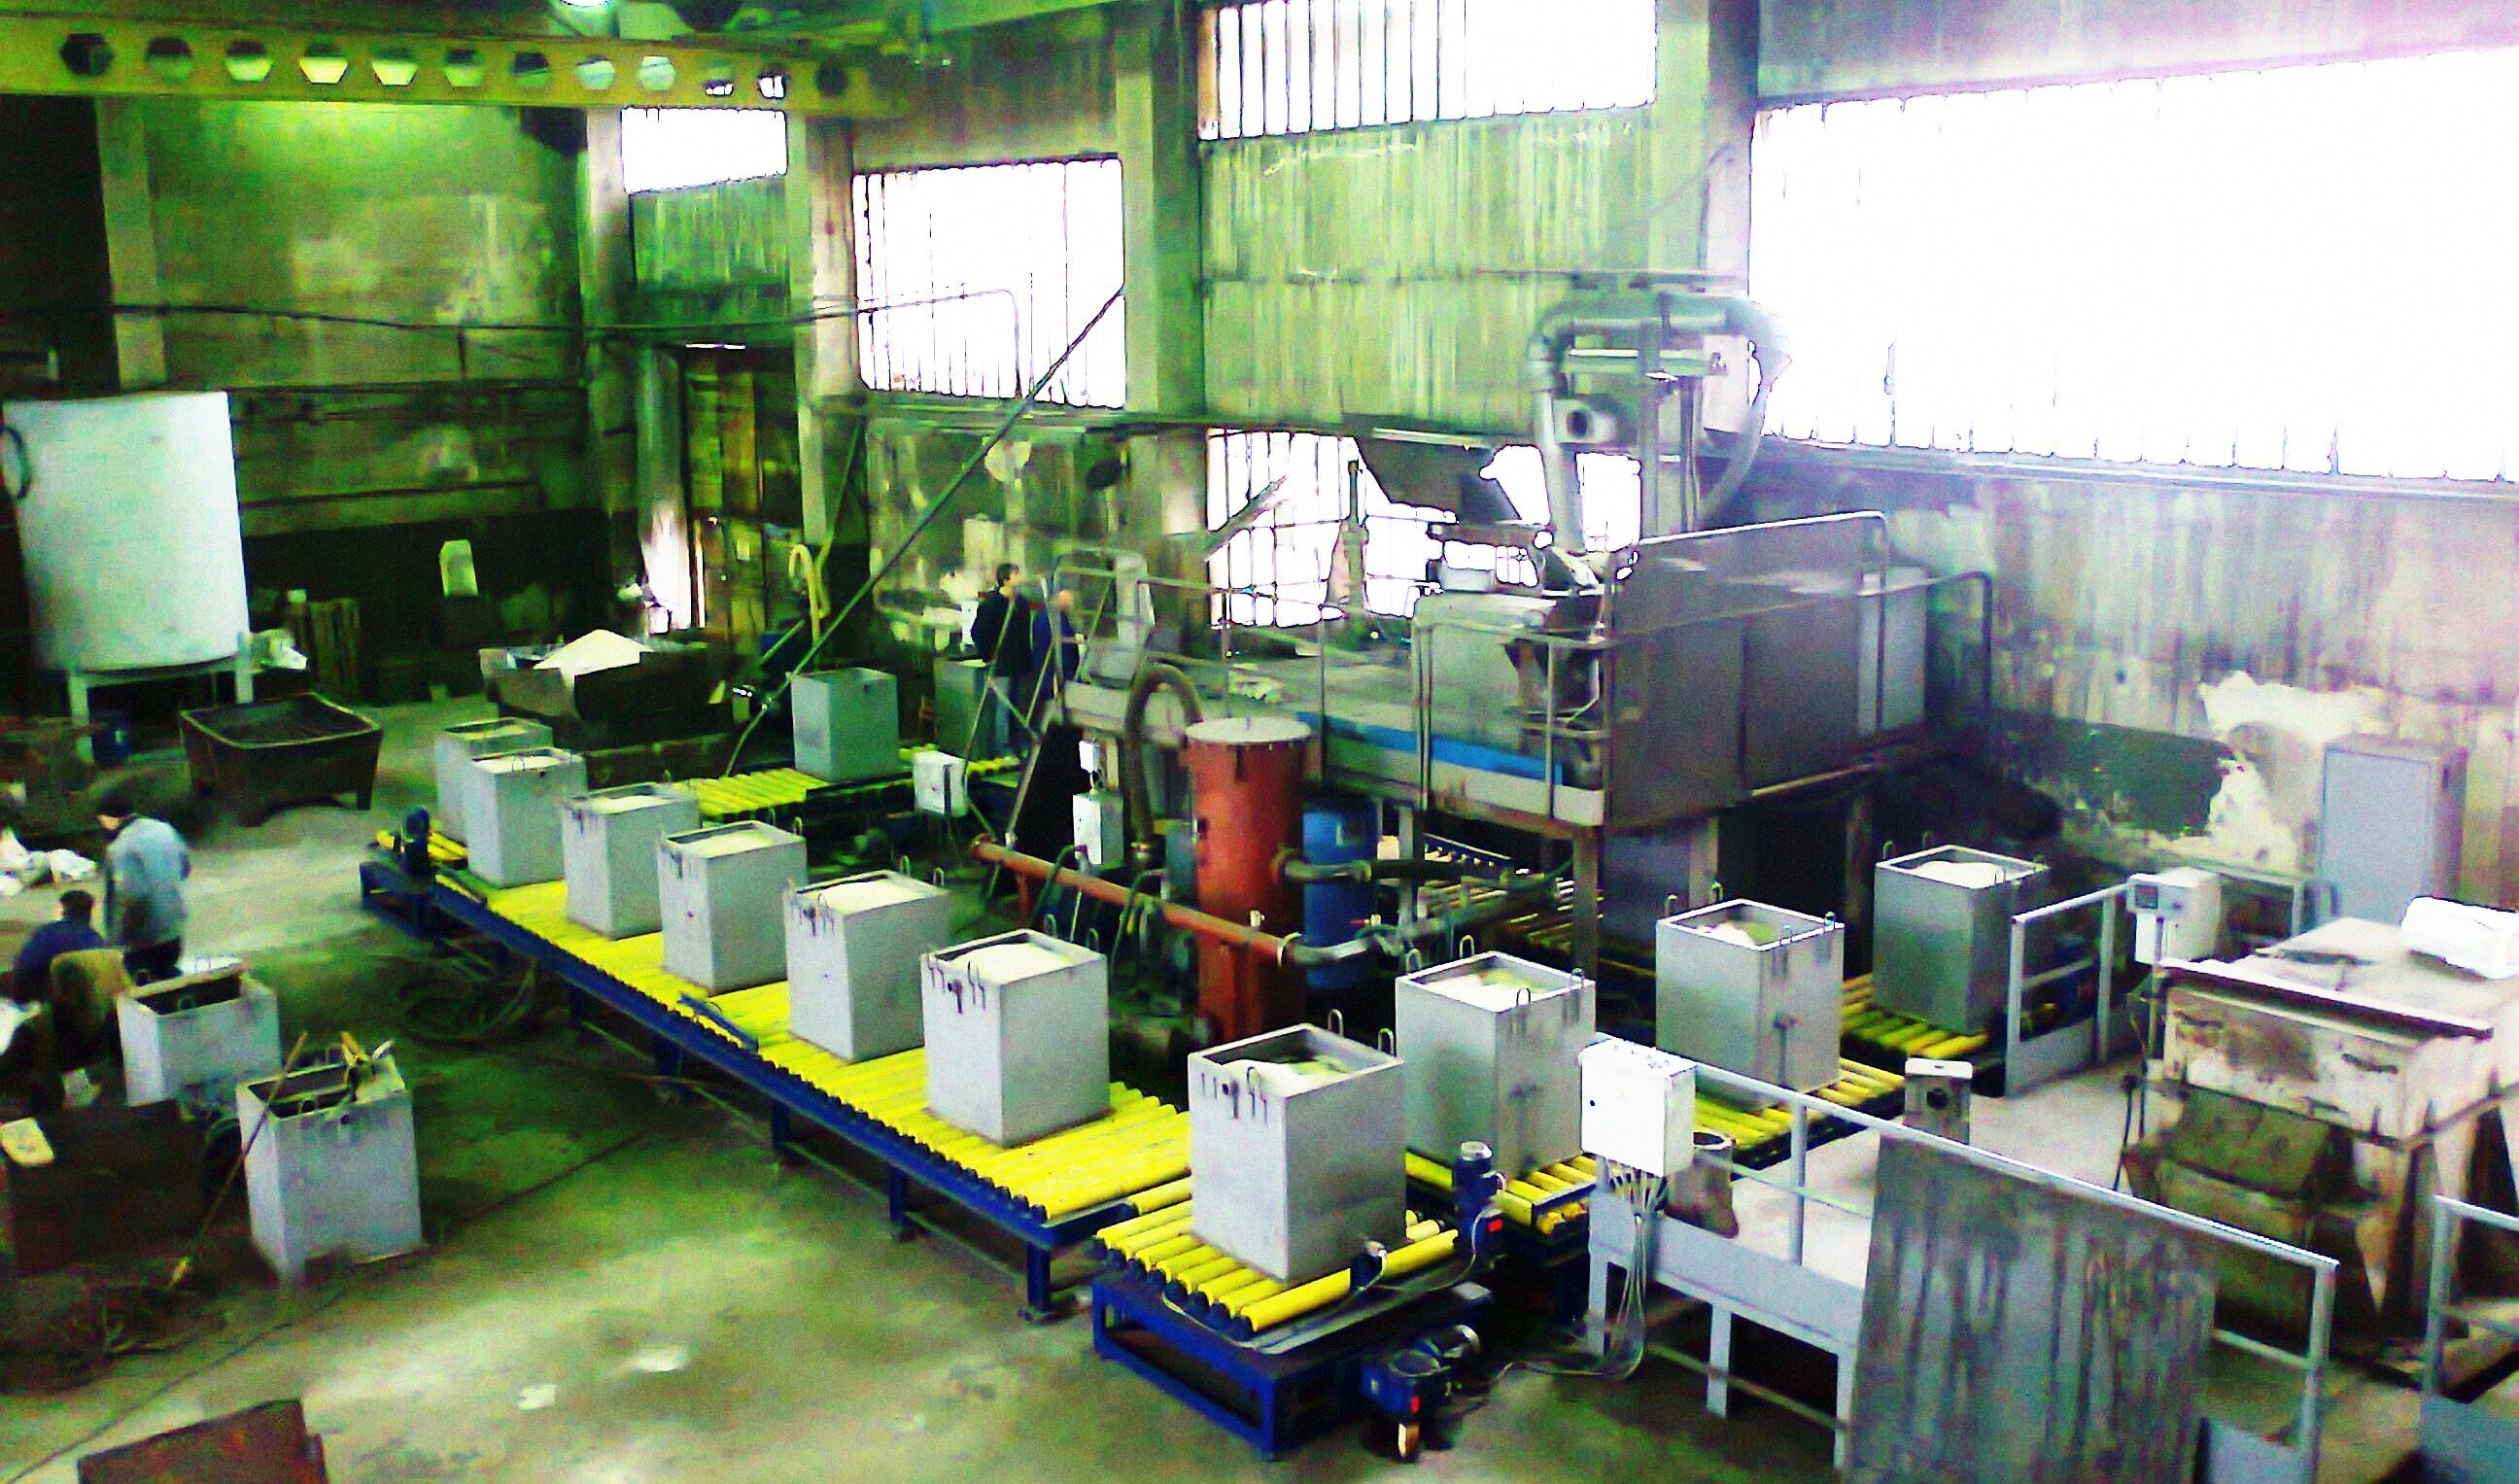 lgm_500_foundry_shop_interior.jpg